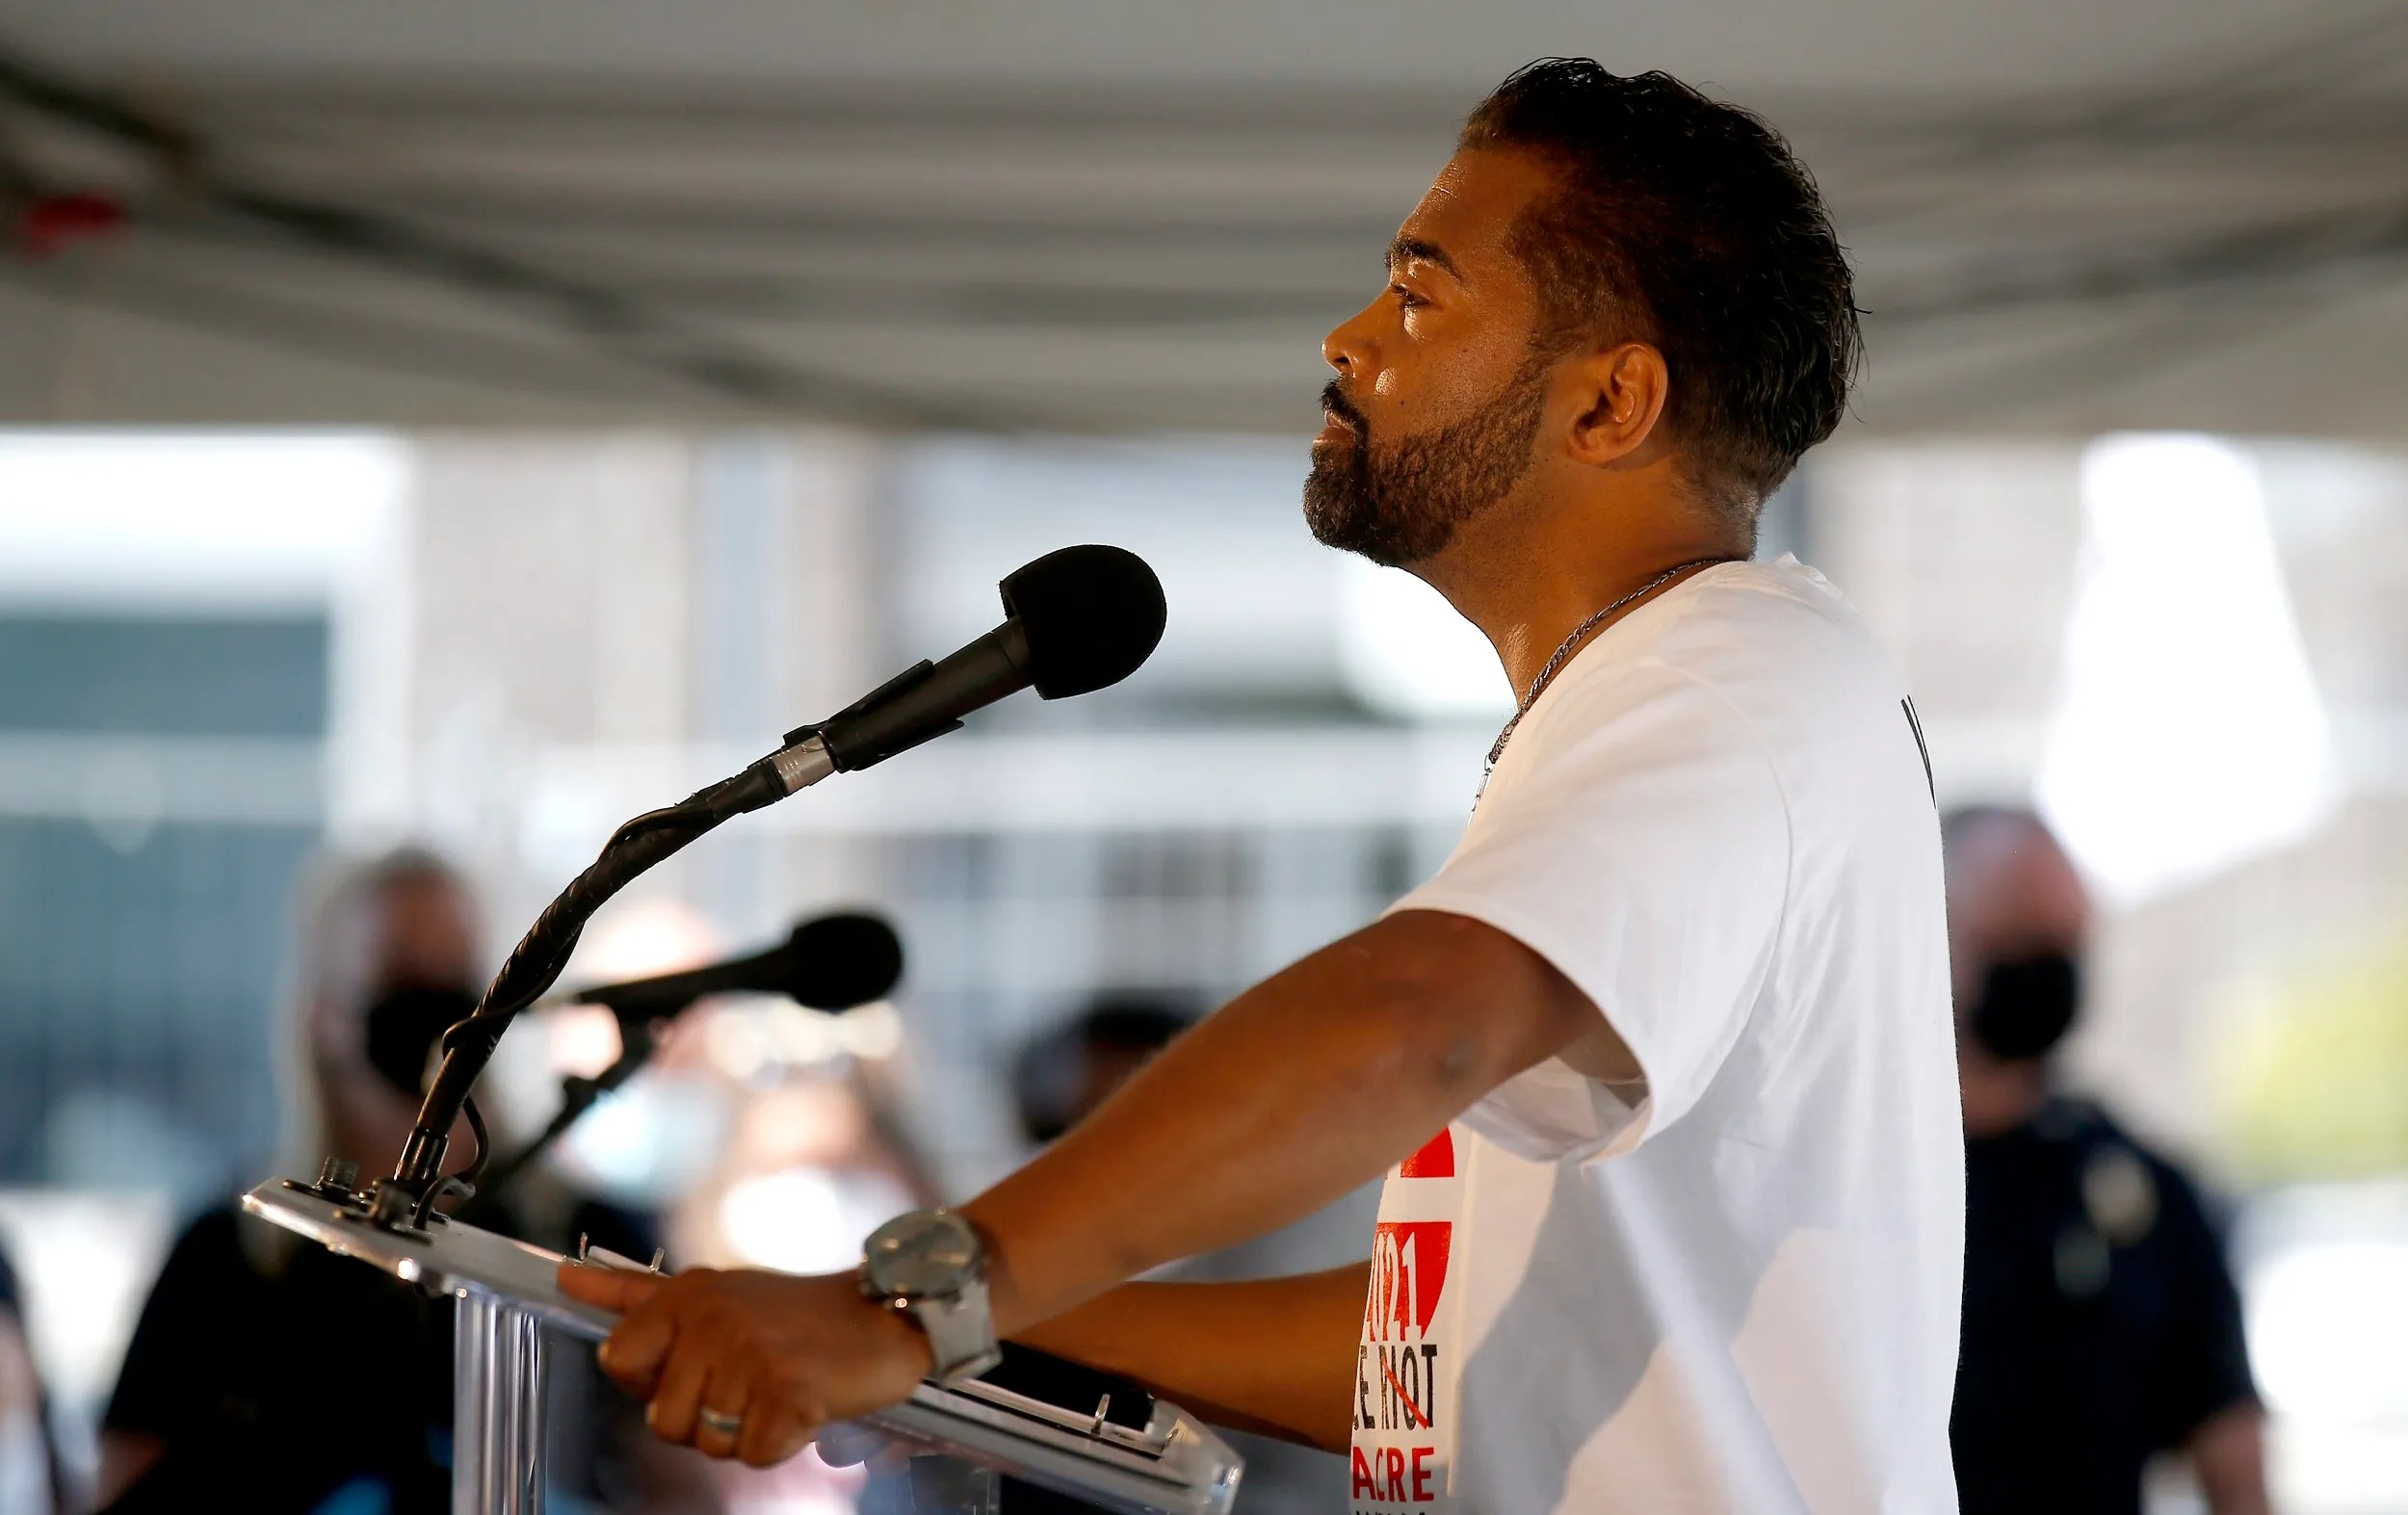 """Phil Amstrong sings """"Lift Every Voice and Sing"""" during the Aug. 21, 2020, groundbreaking event for Greenwood Rising: The Black Wall Street History Center, hosted by the 1921 Tulsa Race Massacre Centennial Commission, in the Greenwood District of Tulsa."""